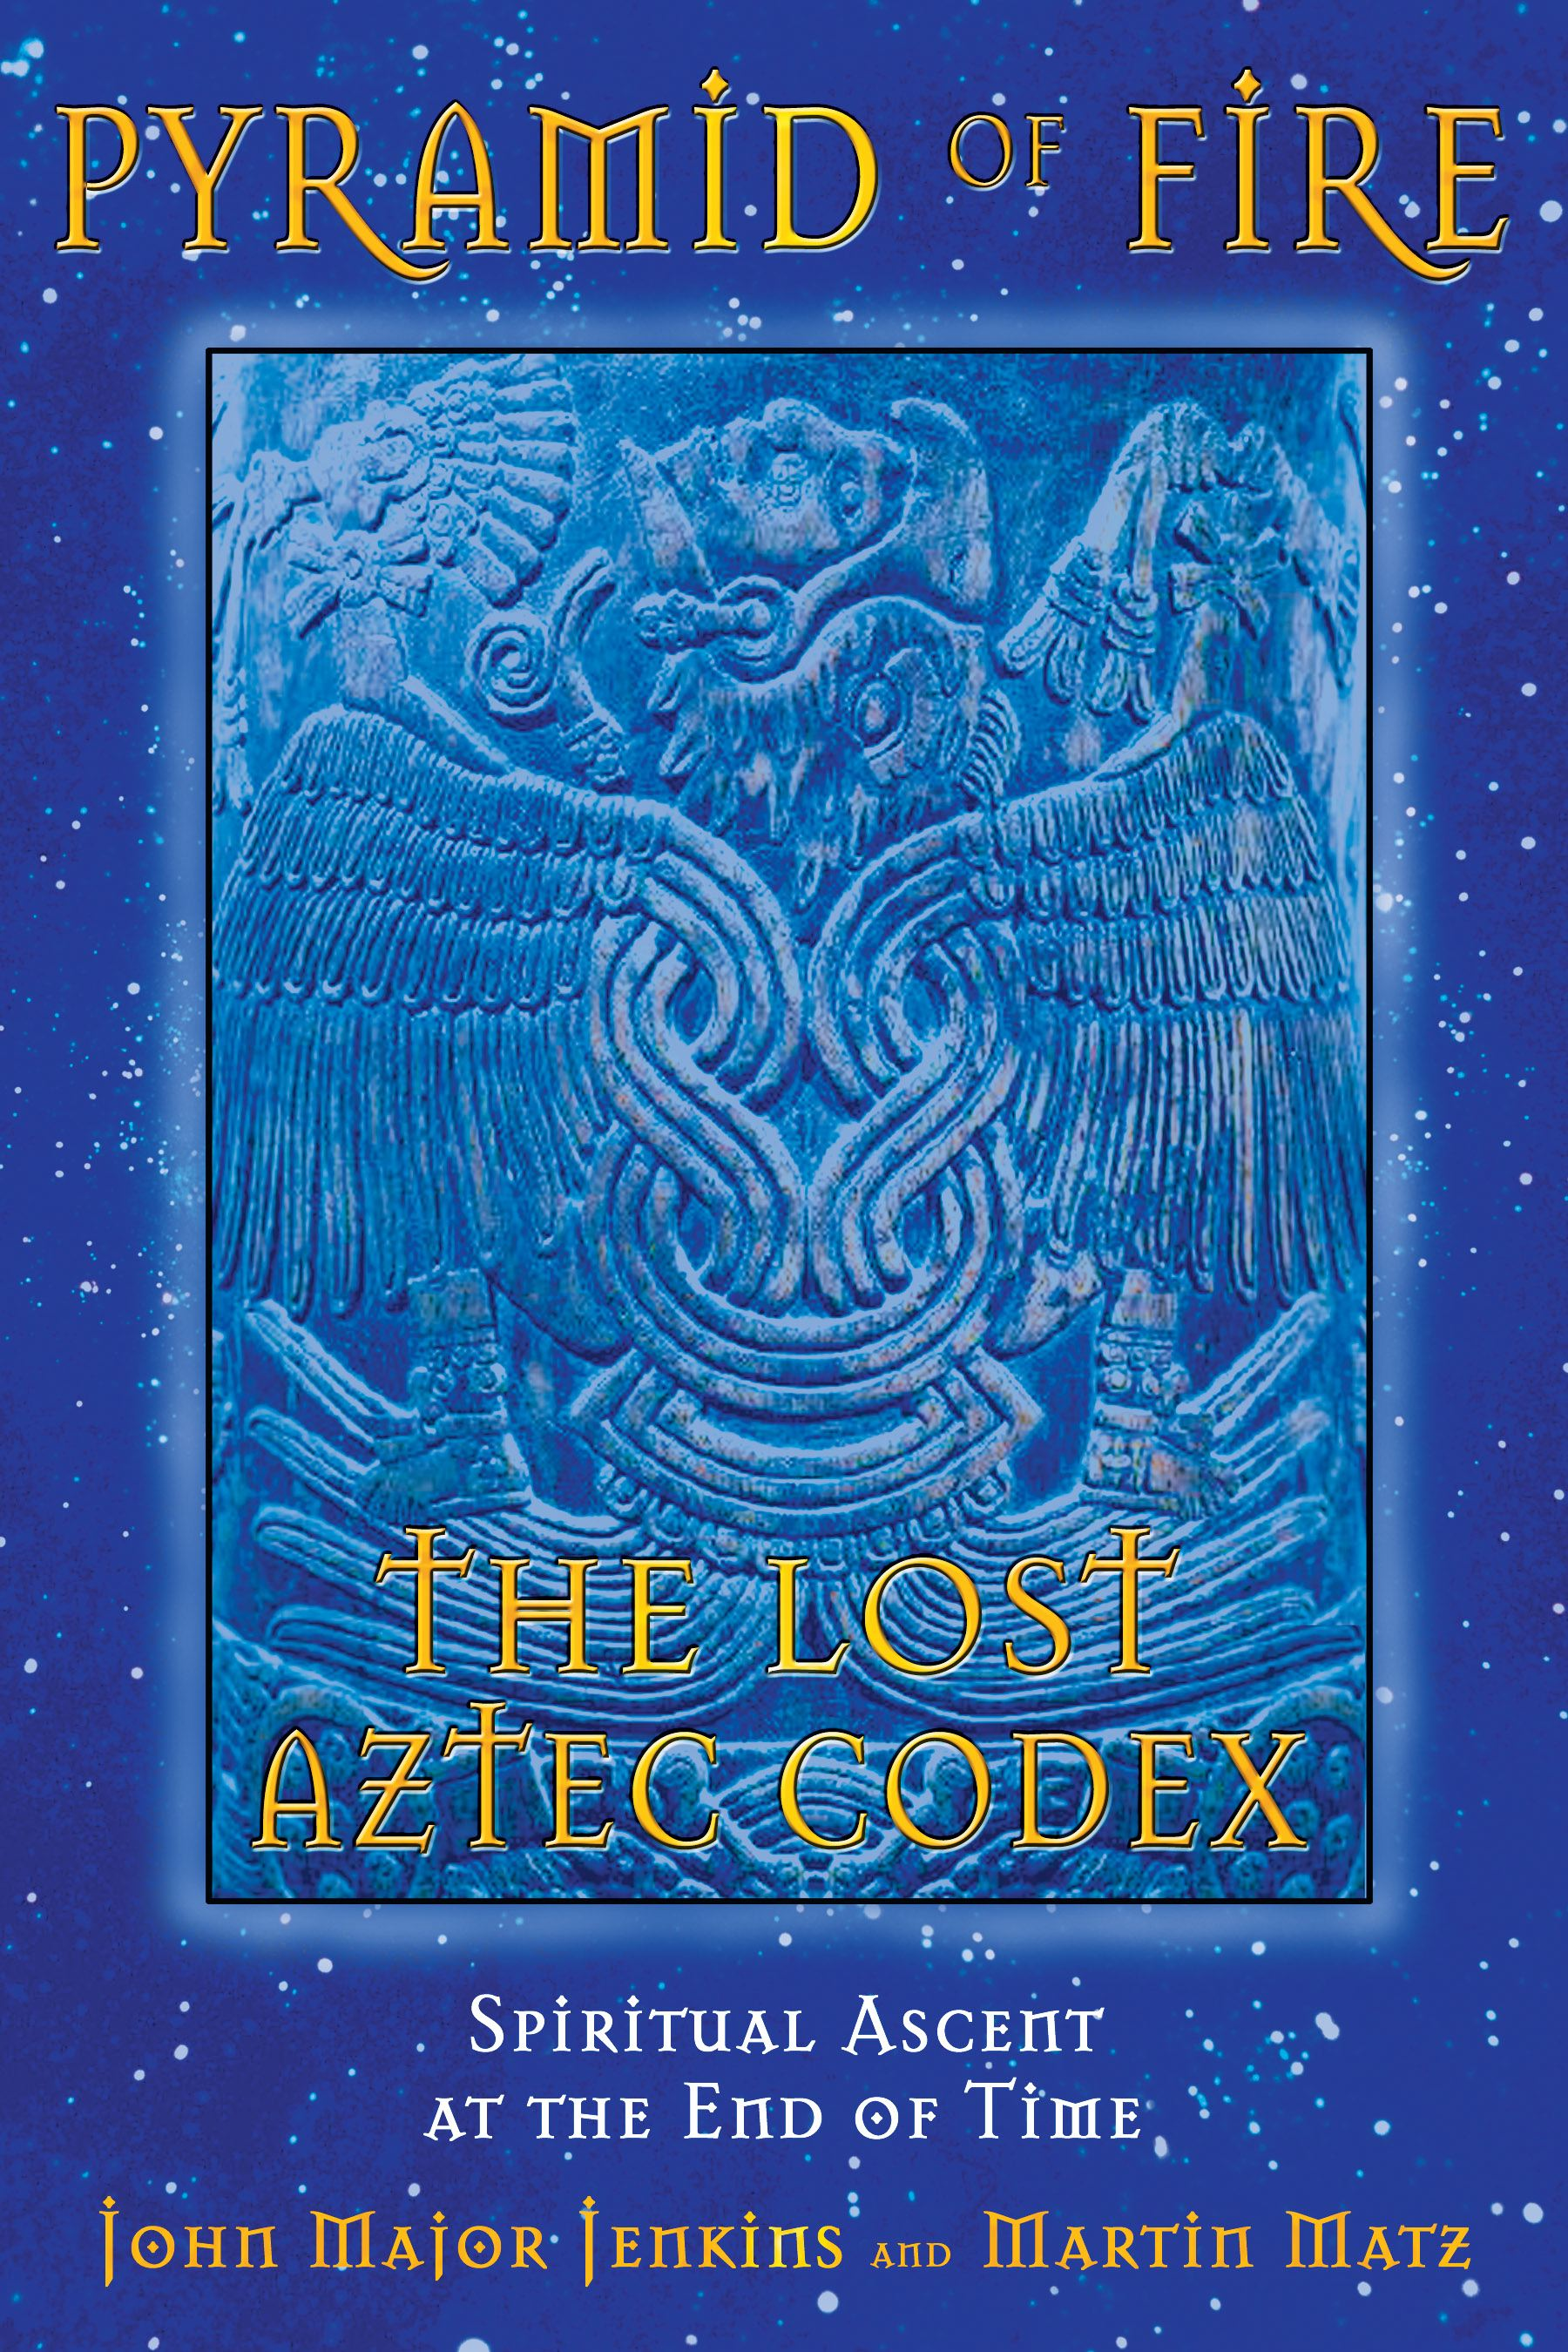 Pyramid-of-fire-the-lost-aztec-codex-9781591430322_hr